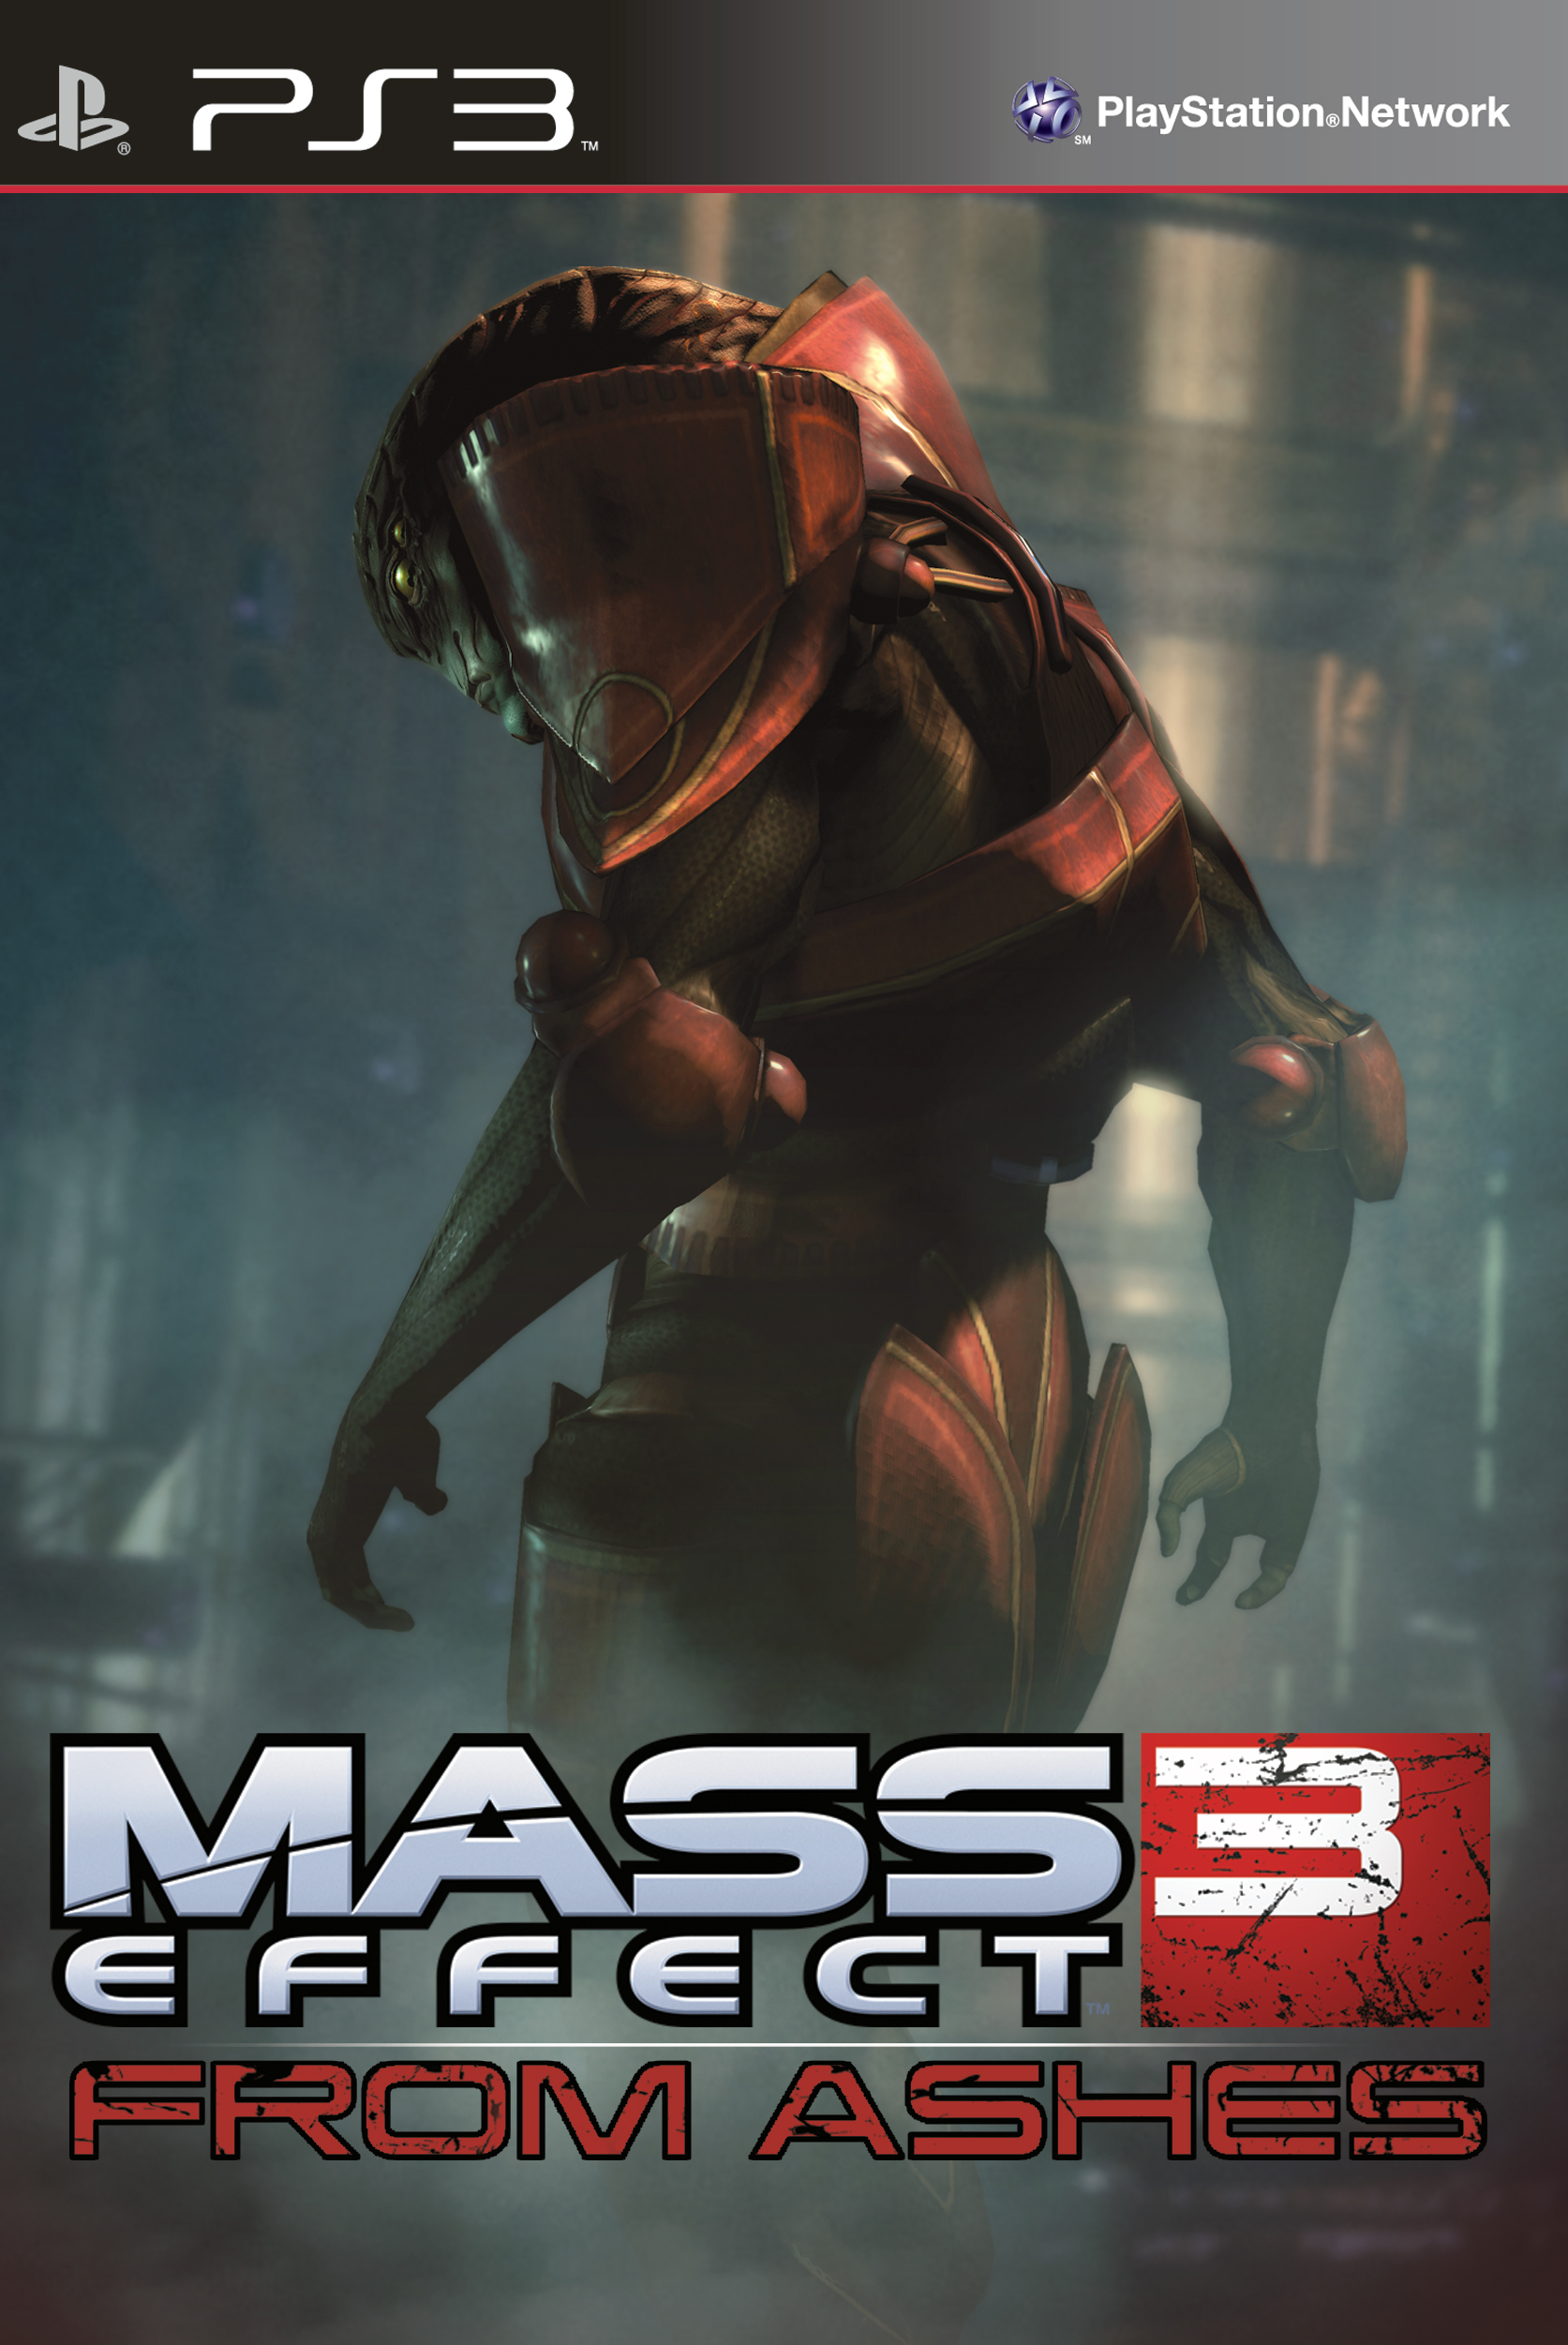 Mass Effect 3: From Ashes PlayStation 3